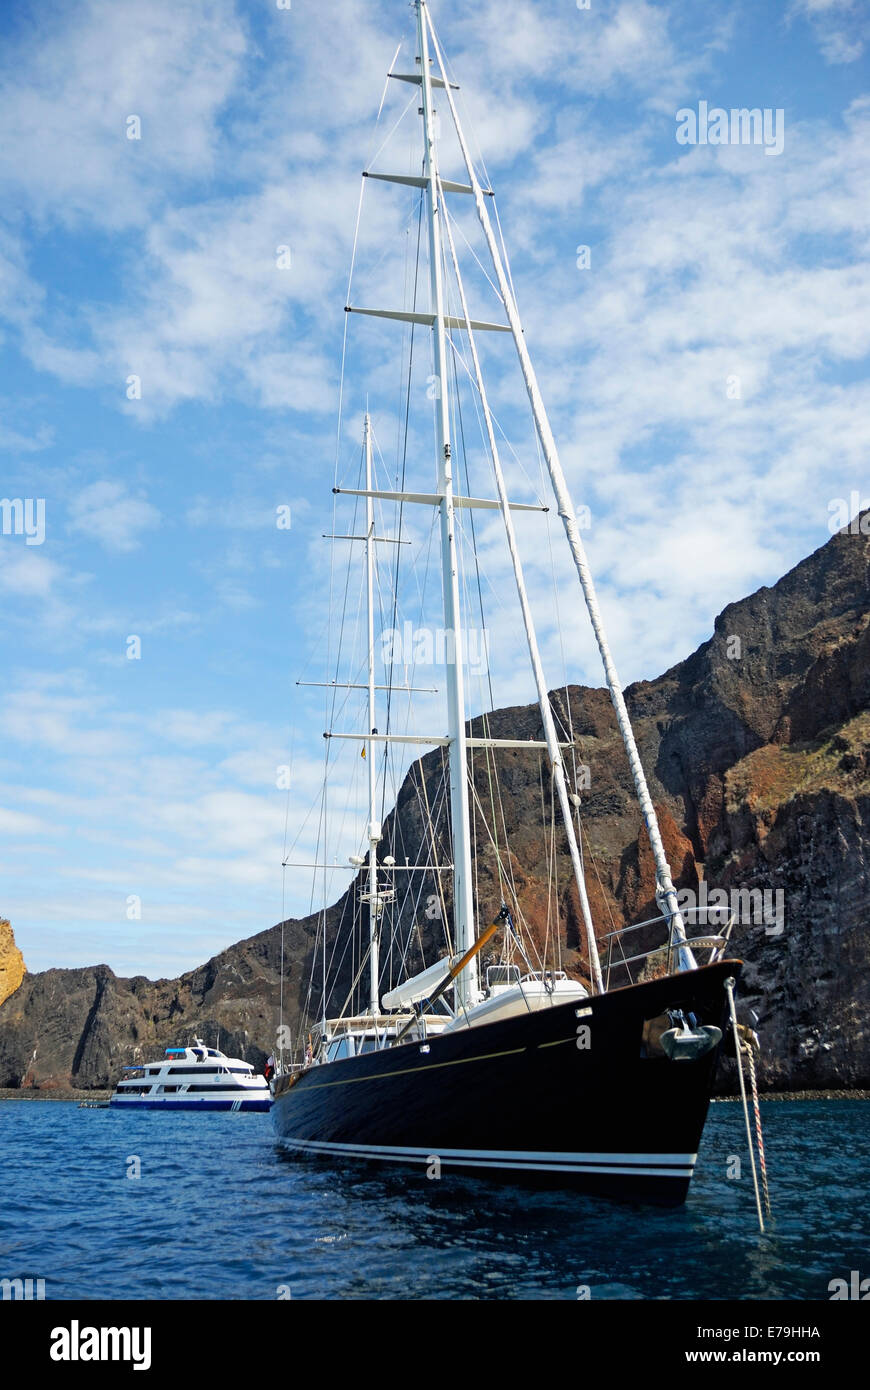 Sailboat by the volcanic cliffs of Isabela Island, Galapagos Islands, Ecuador, South America - Stock Image